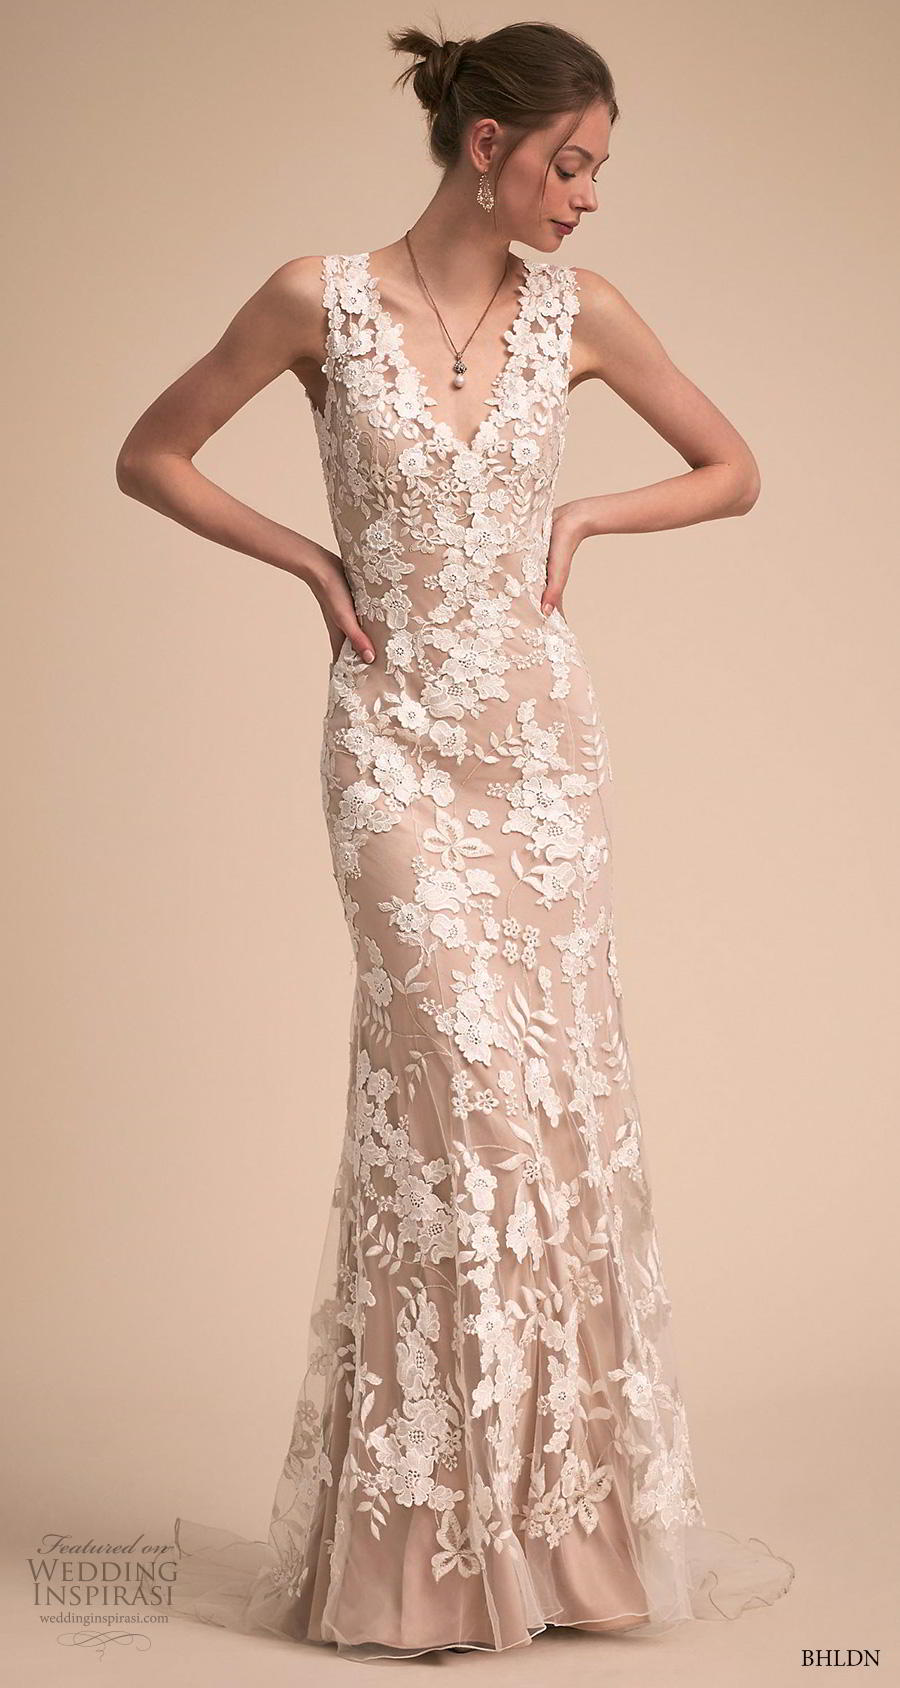 bhldn 2018 own bridal sleeveless v neck full embellishment elegant fit and flare sheath wedding dress backless scoop back short train (15) mv